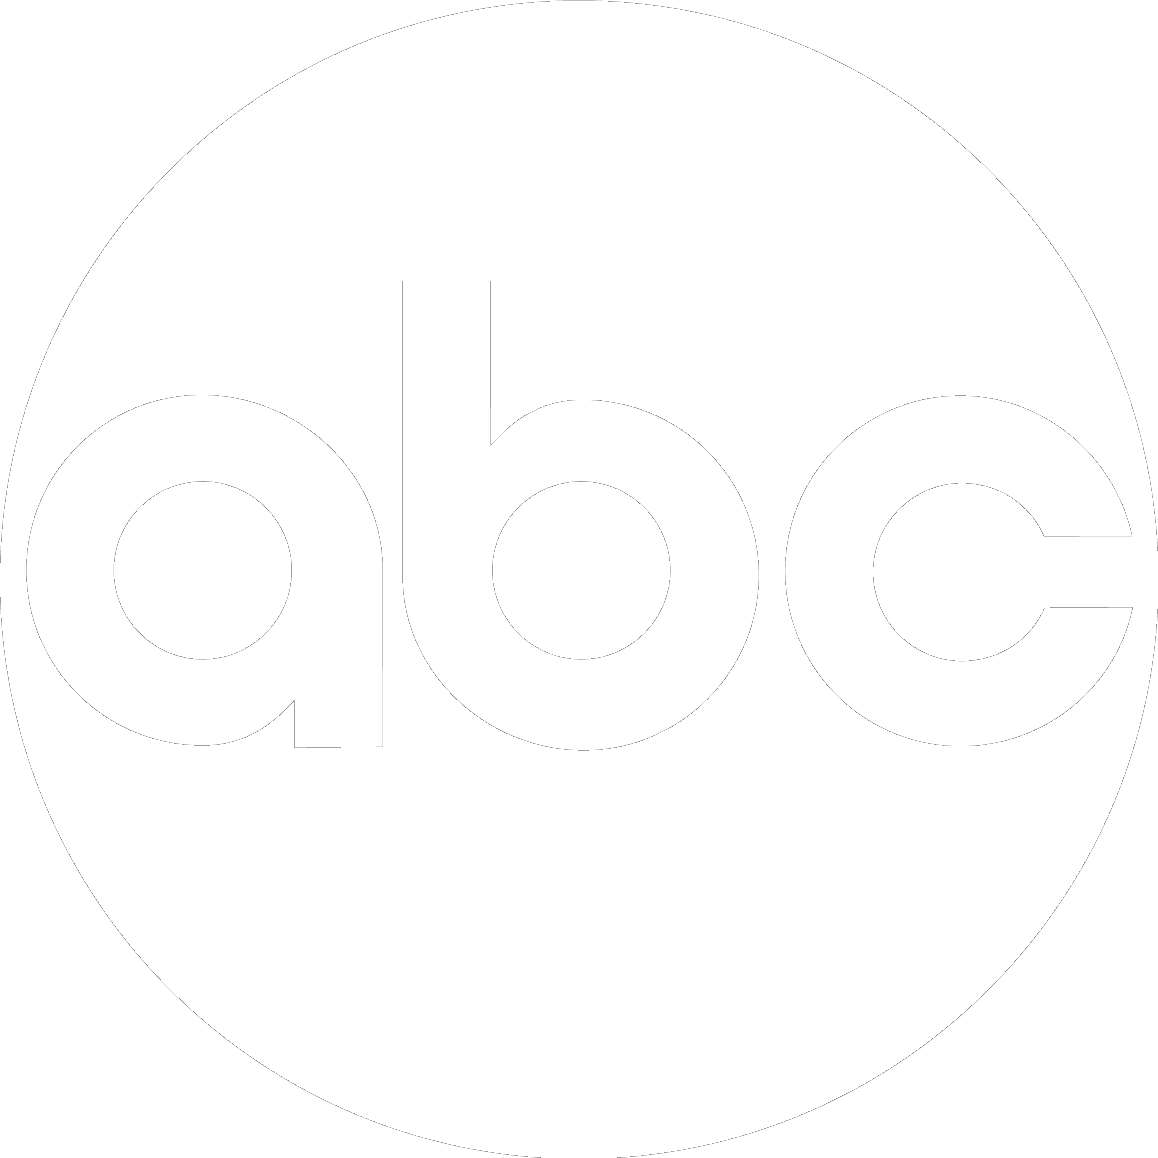 abc-white.png